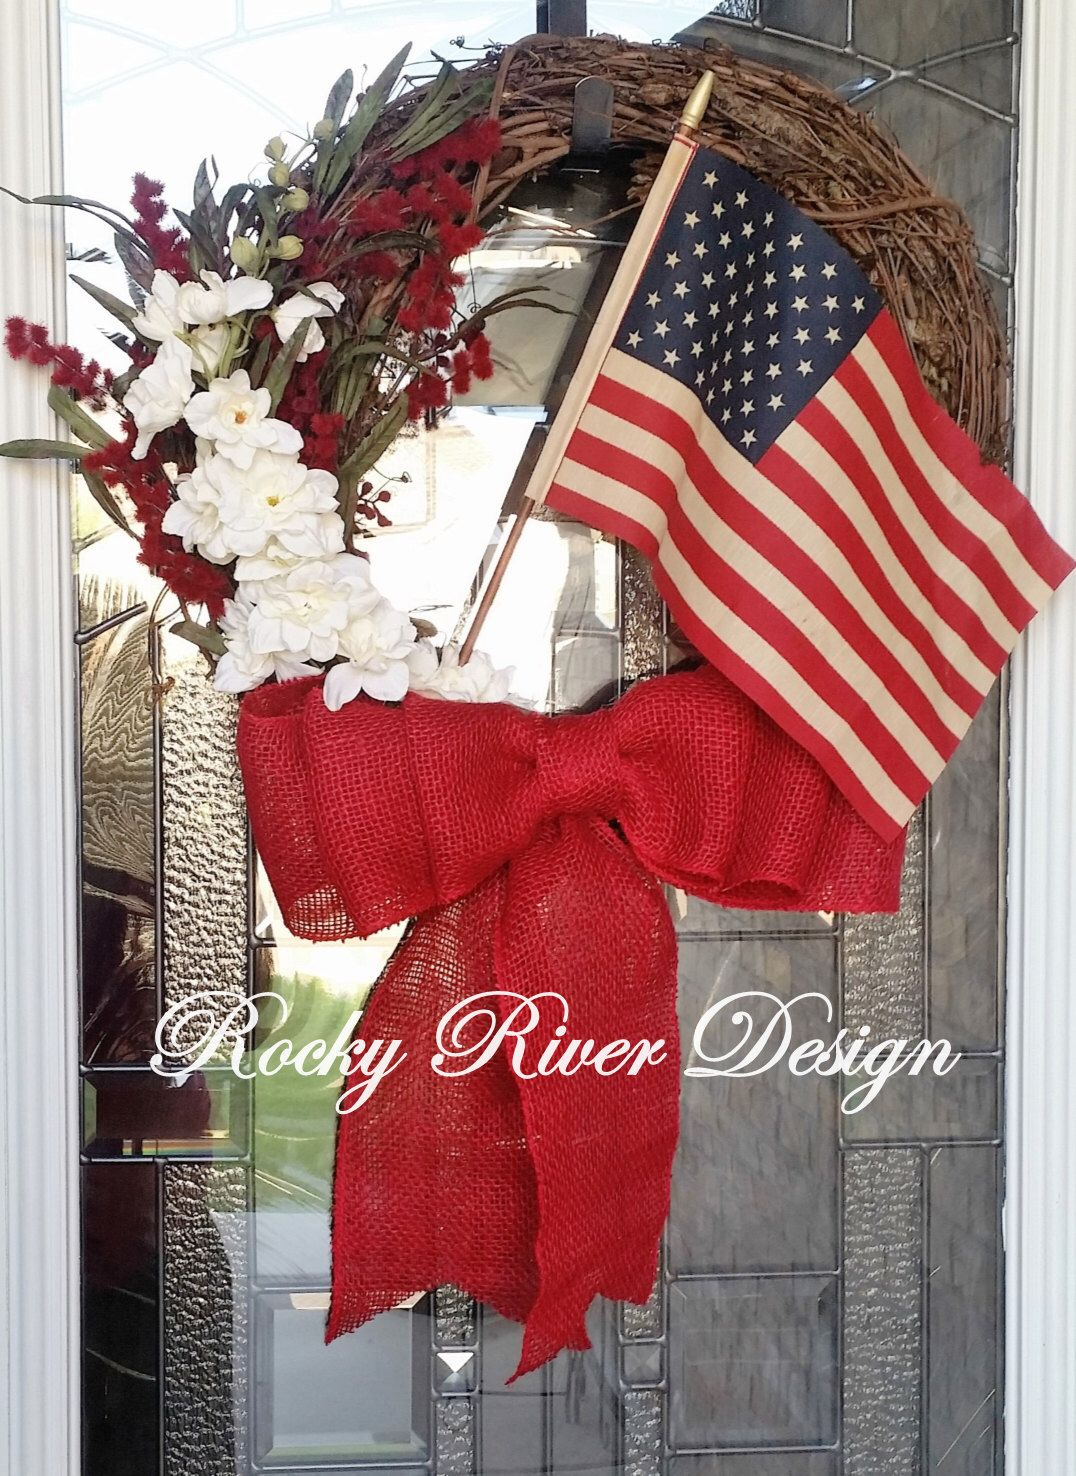 Americana Grapevine Wreath, American Flag, 4th of July, Floral Hanging, Independence Day, Red White and Blue, Tea Stained Flag, Patriotic by RockyRiverDesign on Etsy https://www.etsy.com/listing/399265781/americana-grapevine-wreath-american-flag